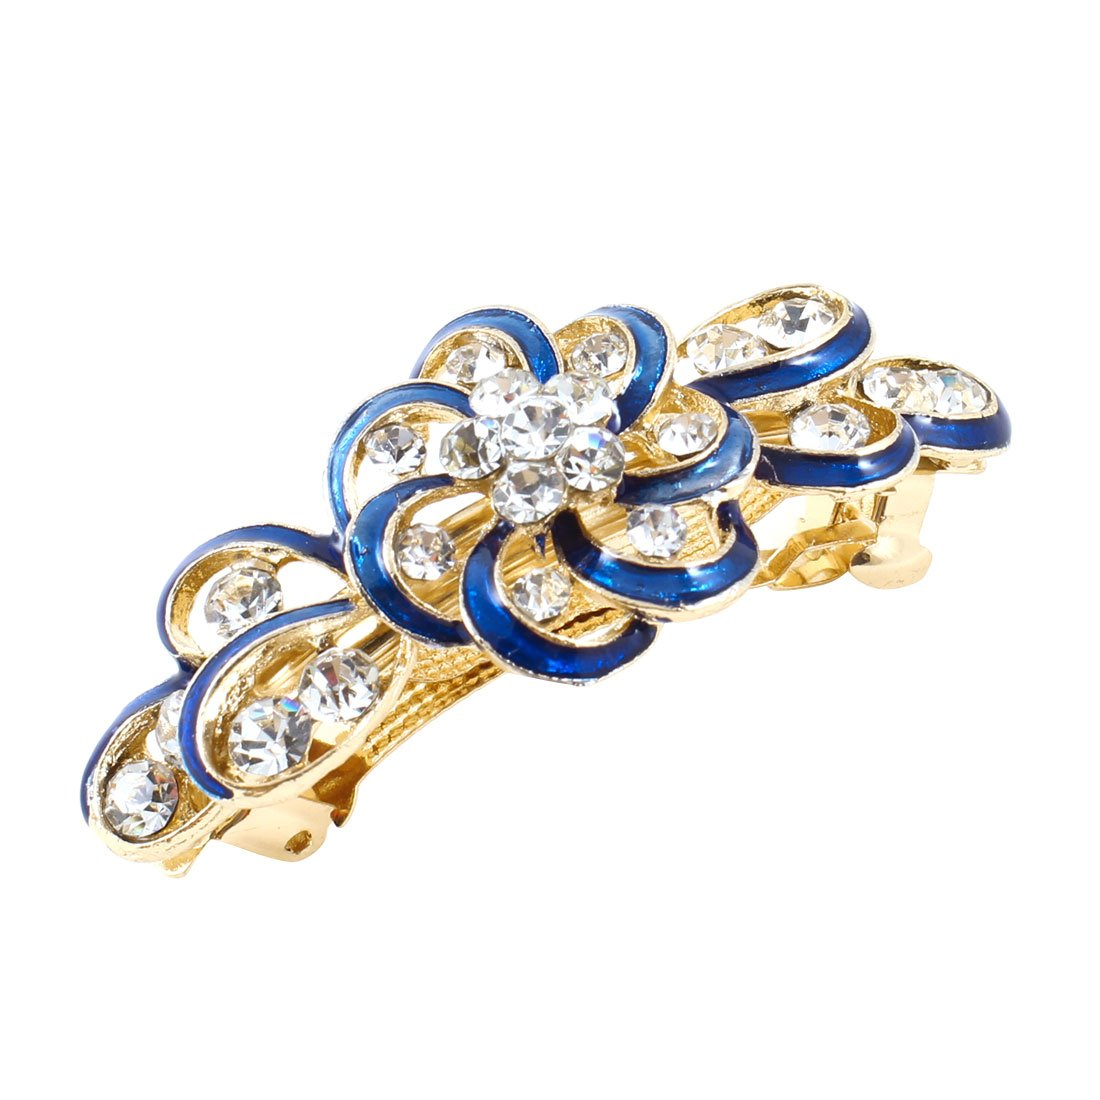 uxcell Woman Gold Tone Metal Blue Plastic Rhinestone Hairpin French Hair Clip Barrette a13060500ux0496